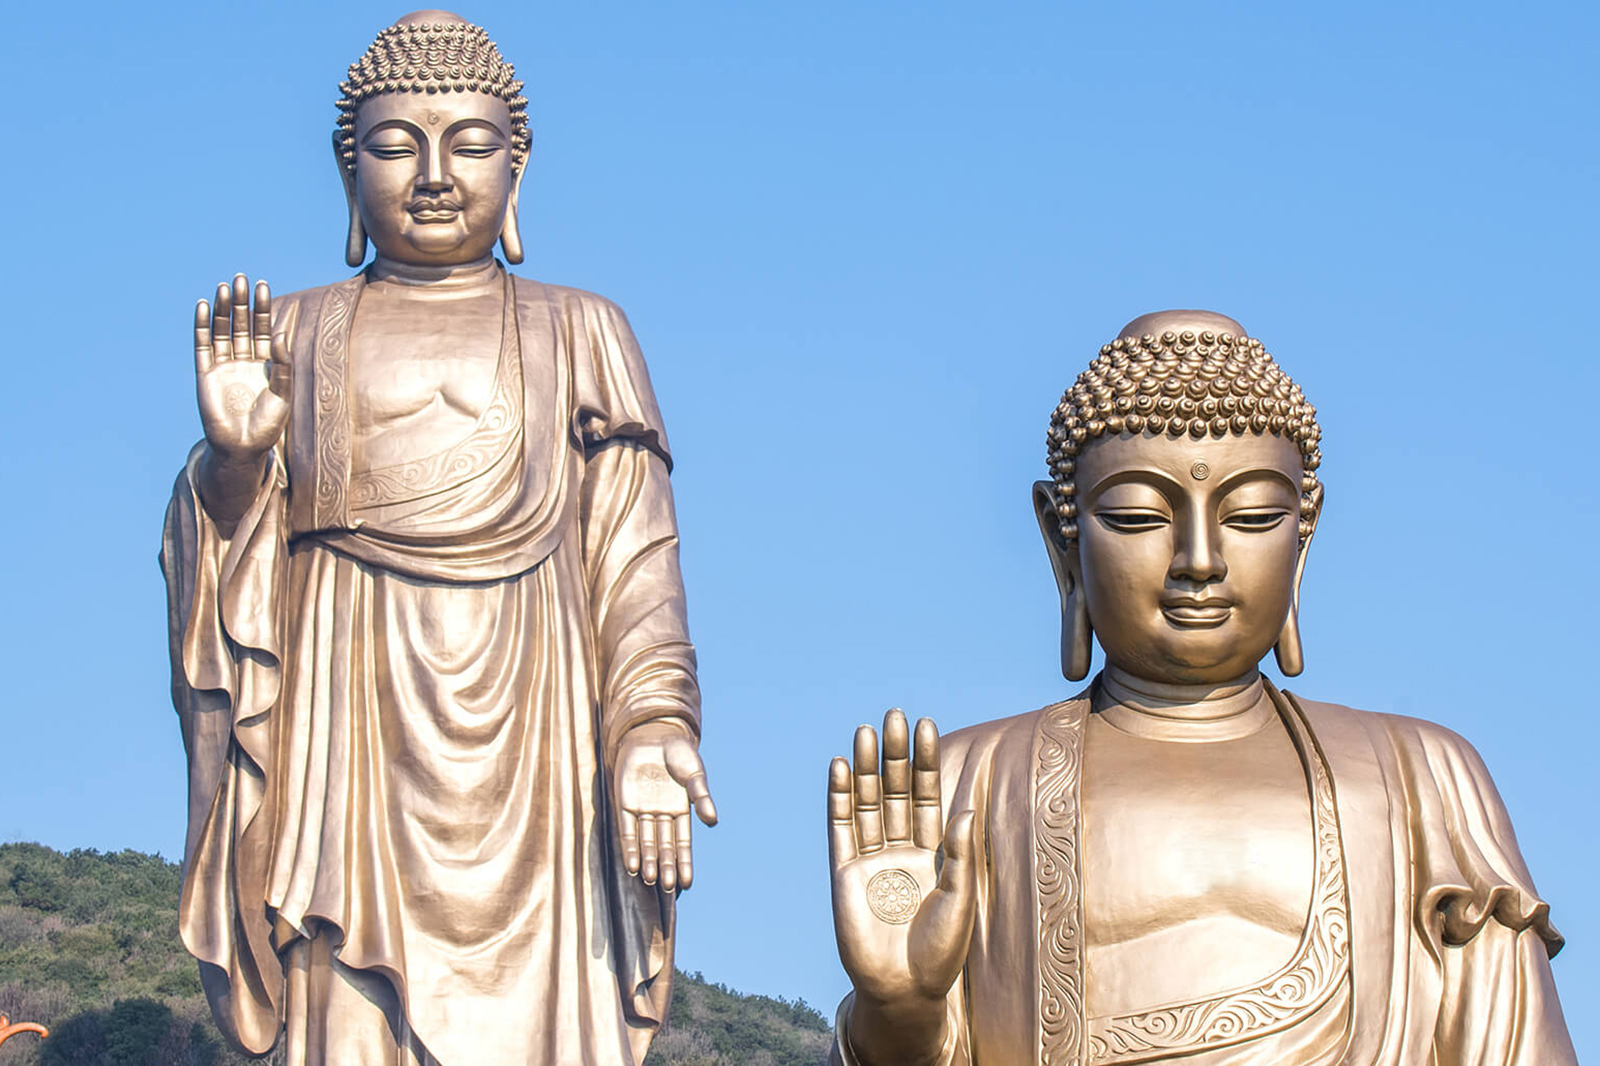 what does a buddha statue represent?